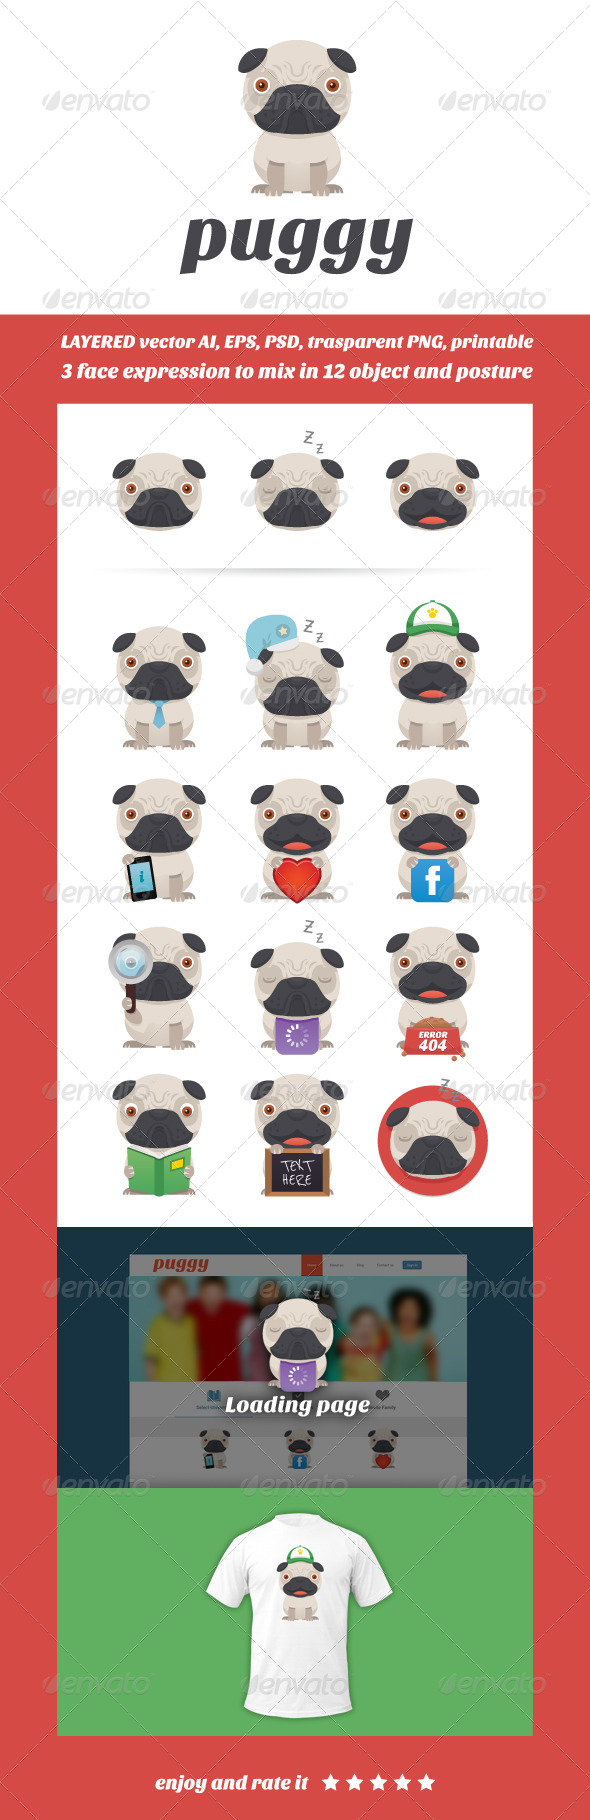 GraphicRiver Puggy Mascot 6416150